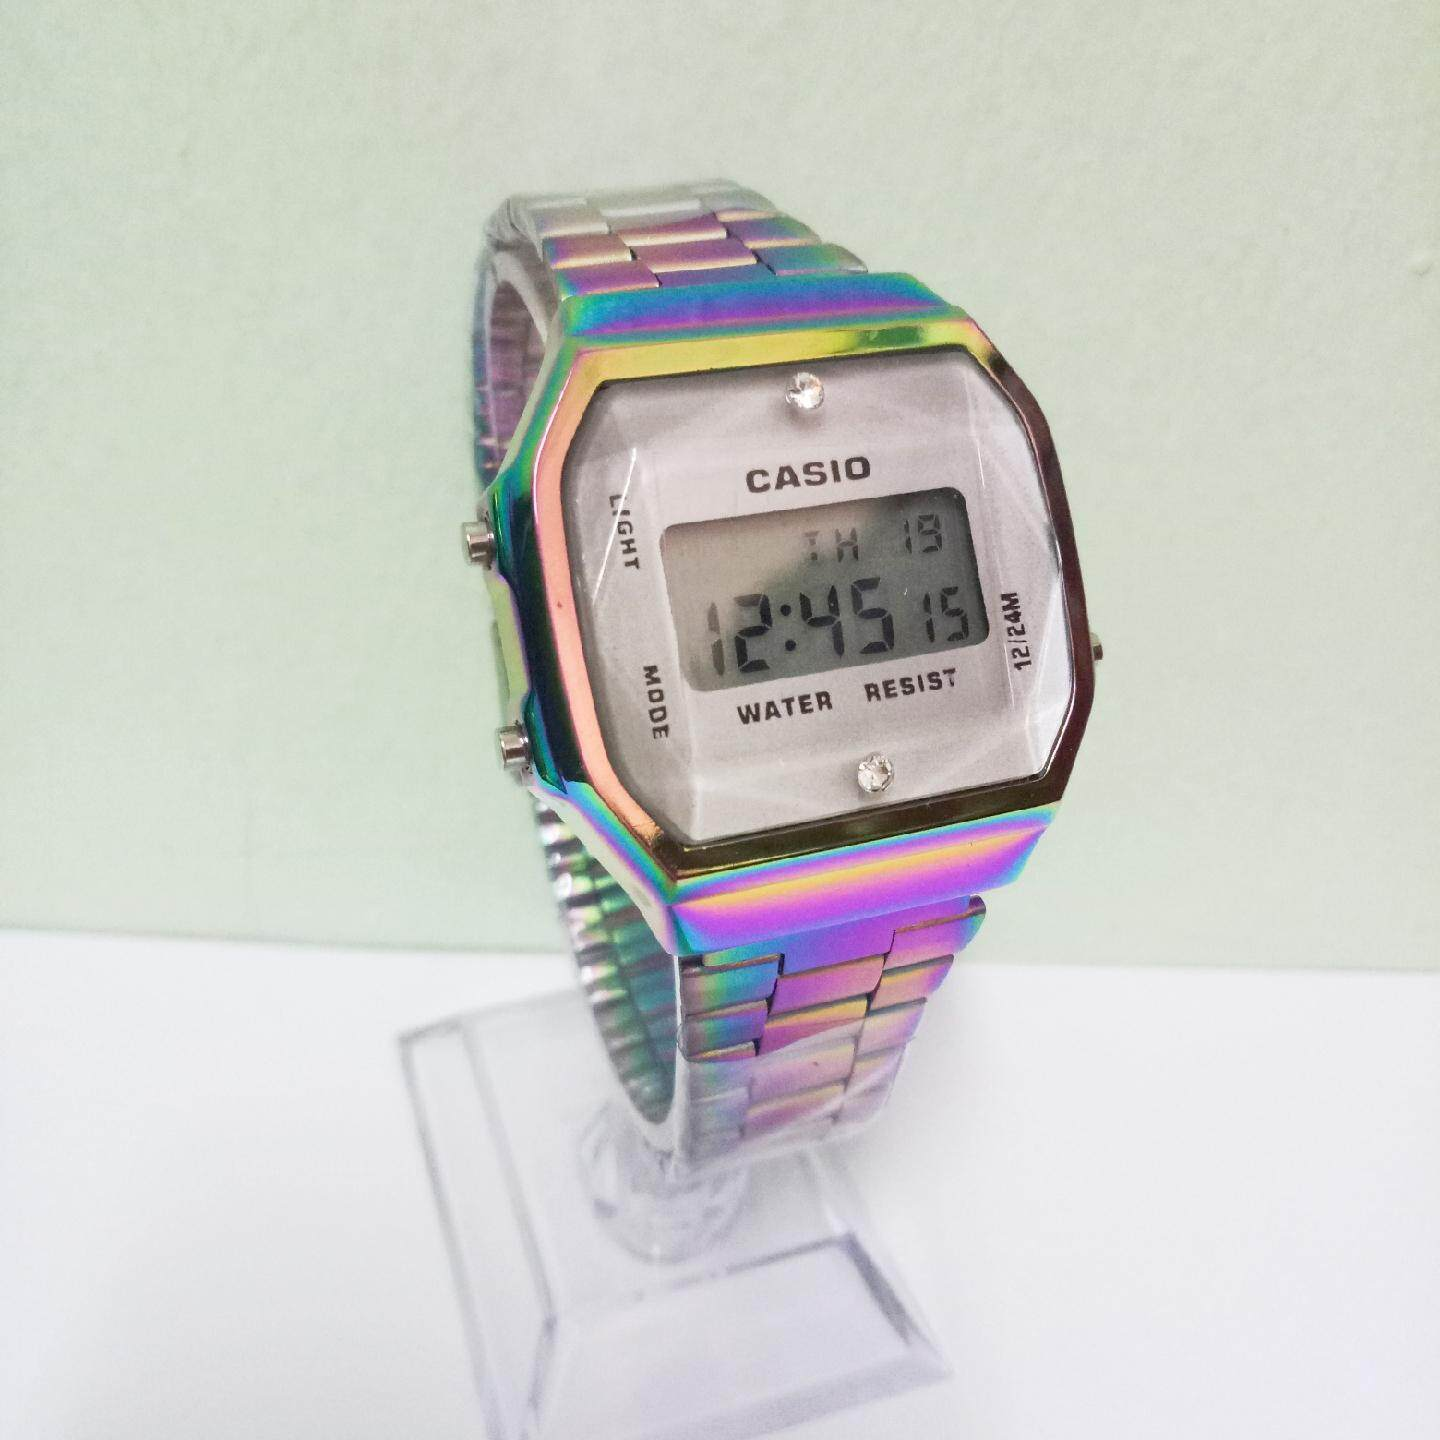 CASI0 A168 Unicorn Stainless Steel Digital Watch Malaysia